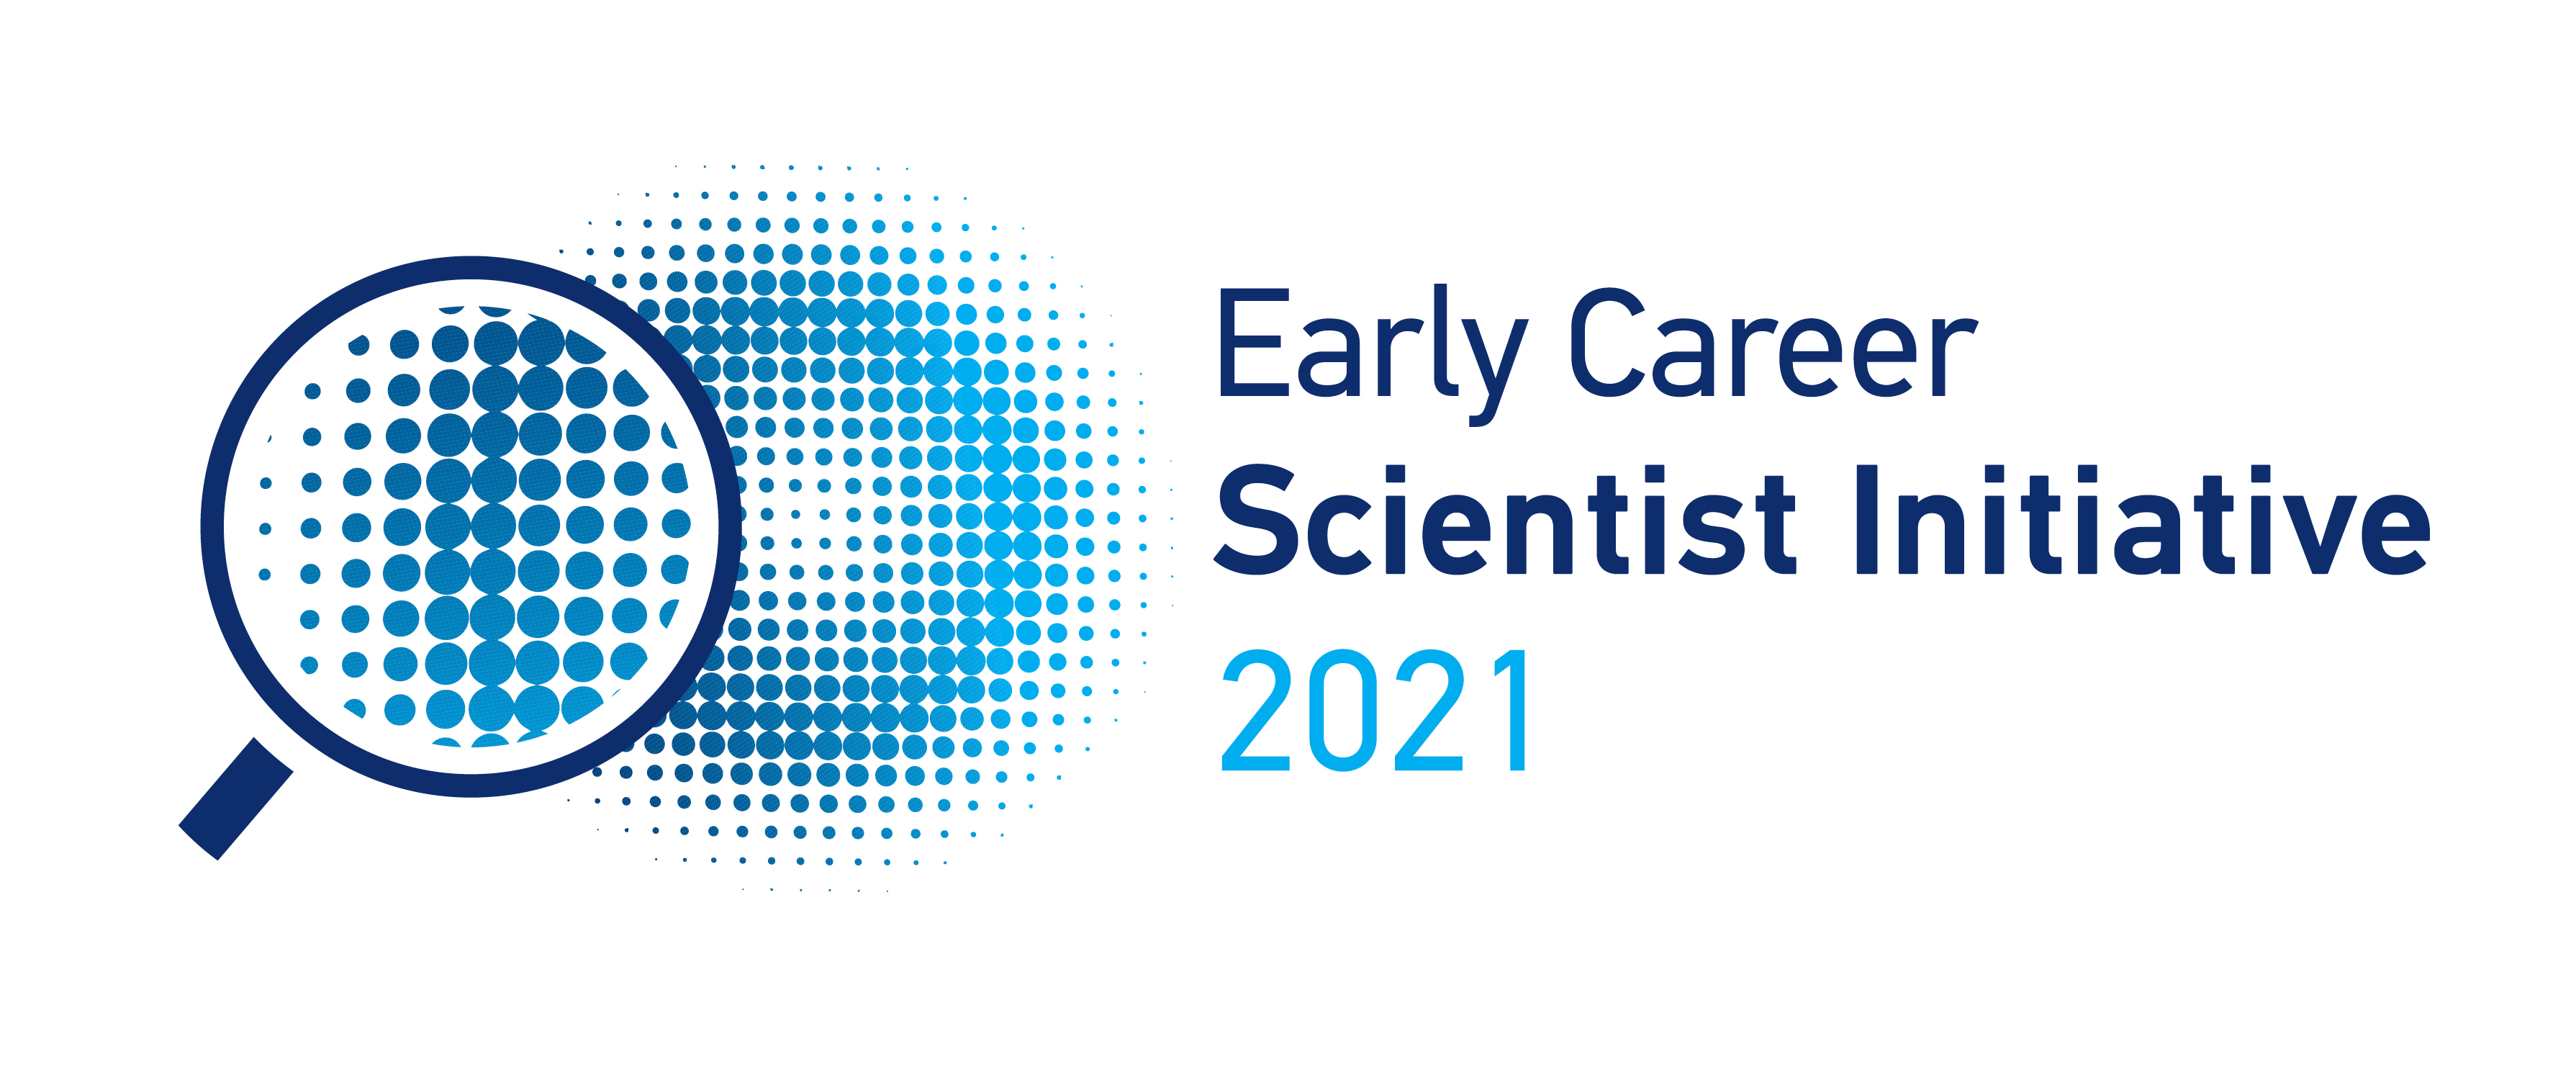 Early Career Scientist Initative 2021